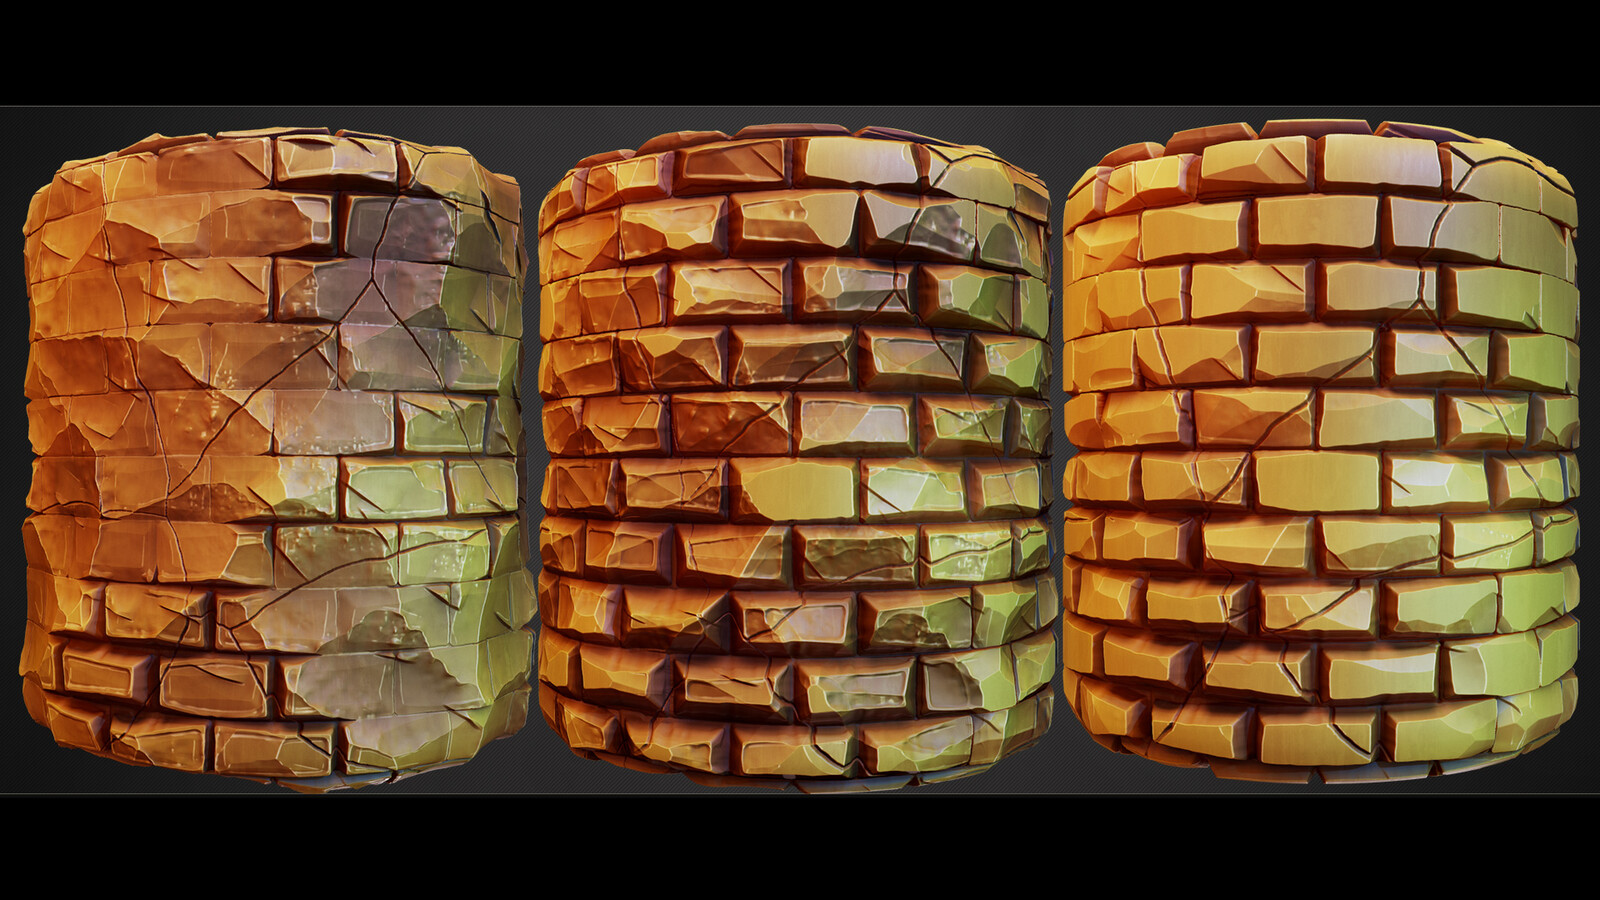 One blend node changes the style of the cracked bricks.